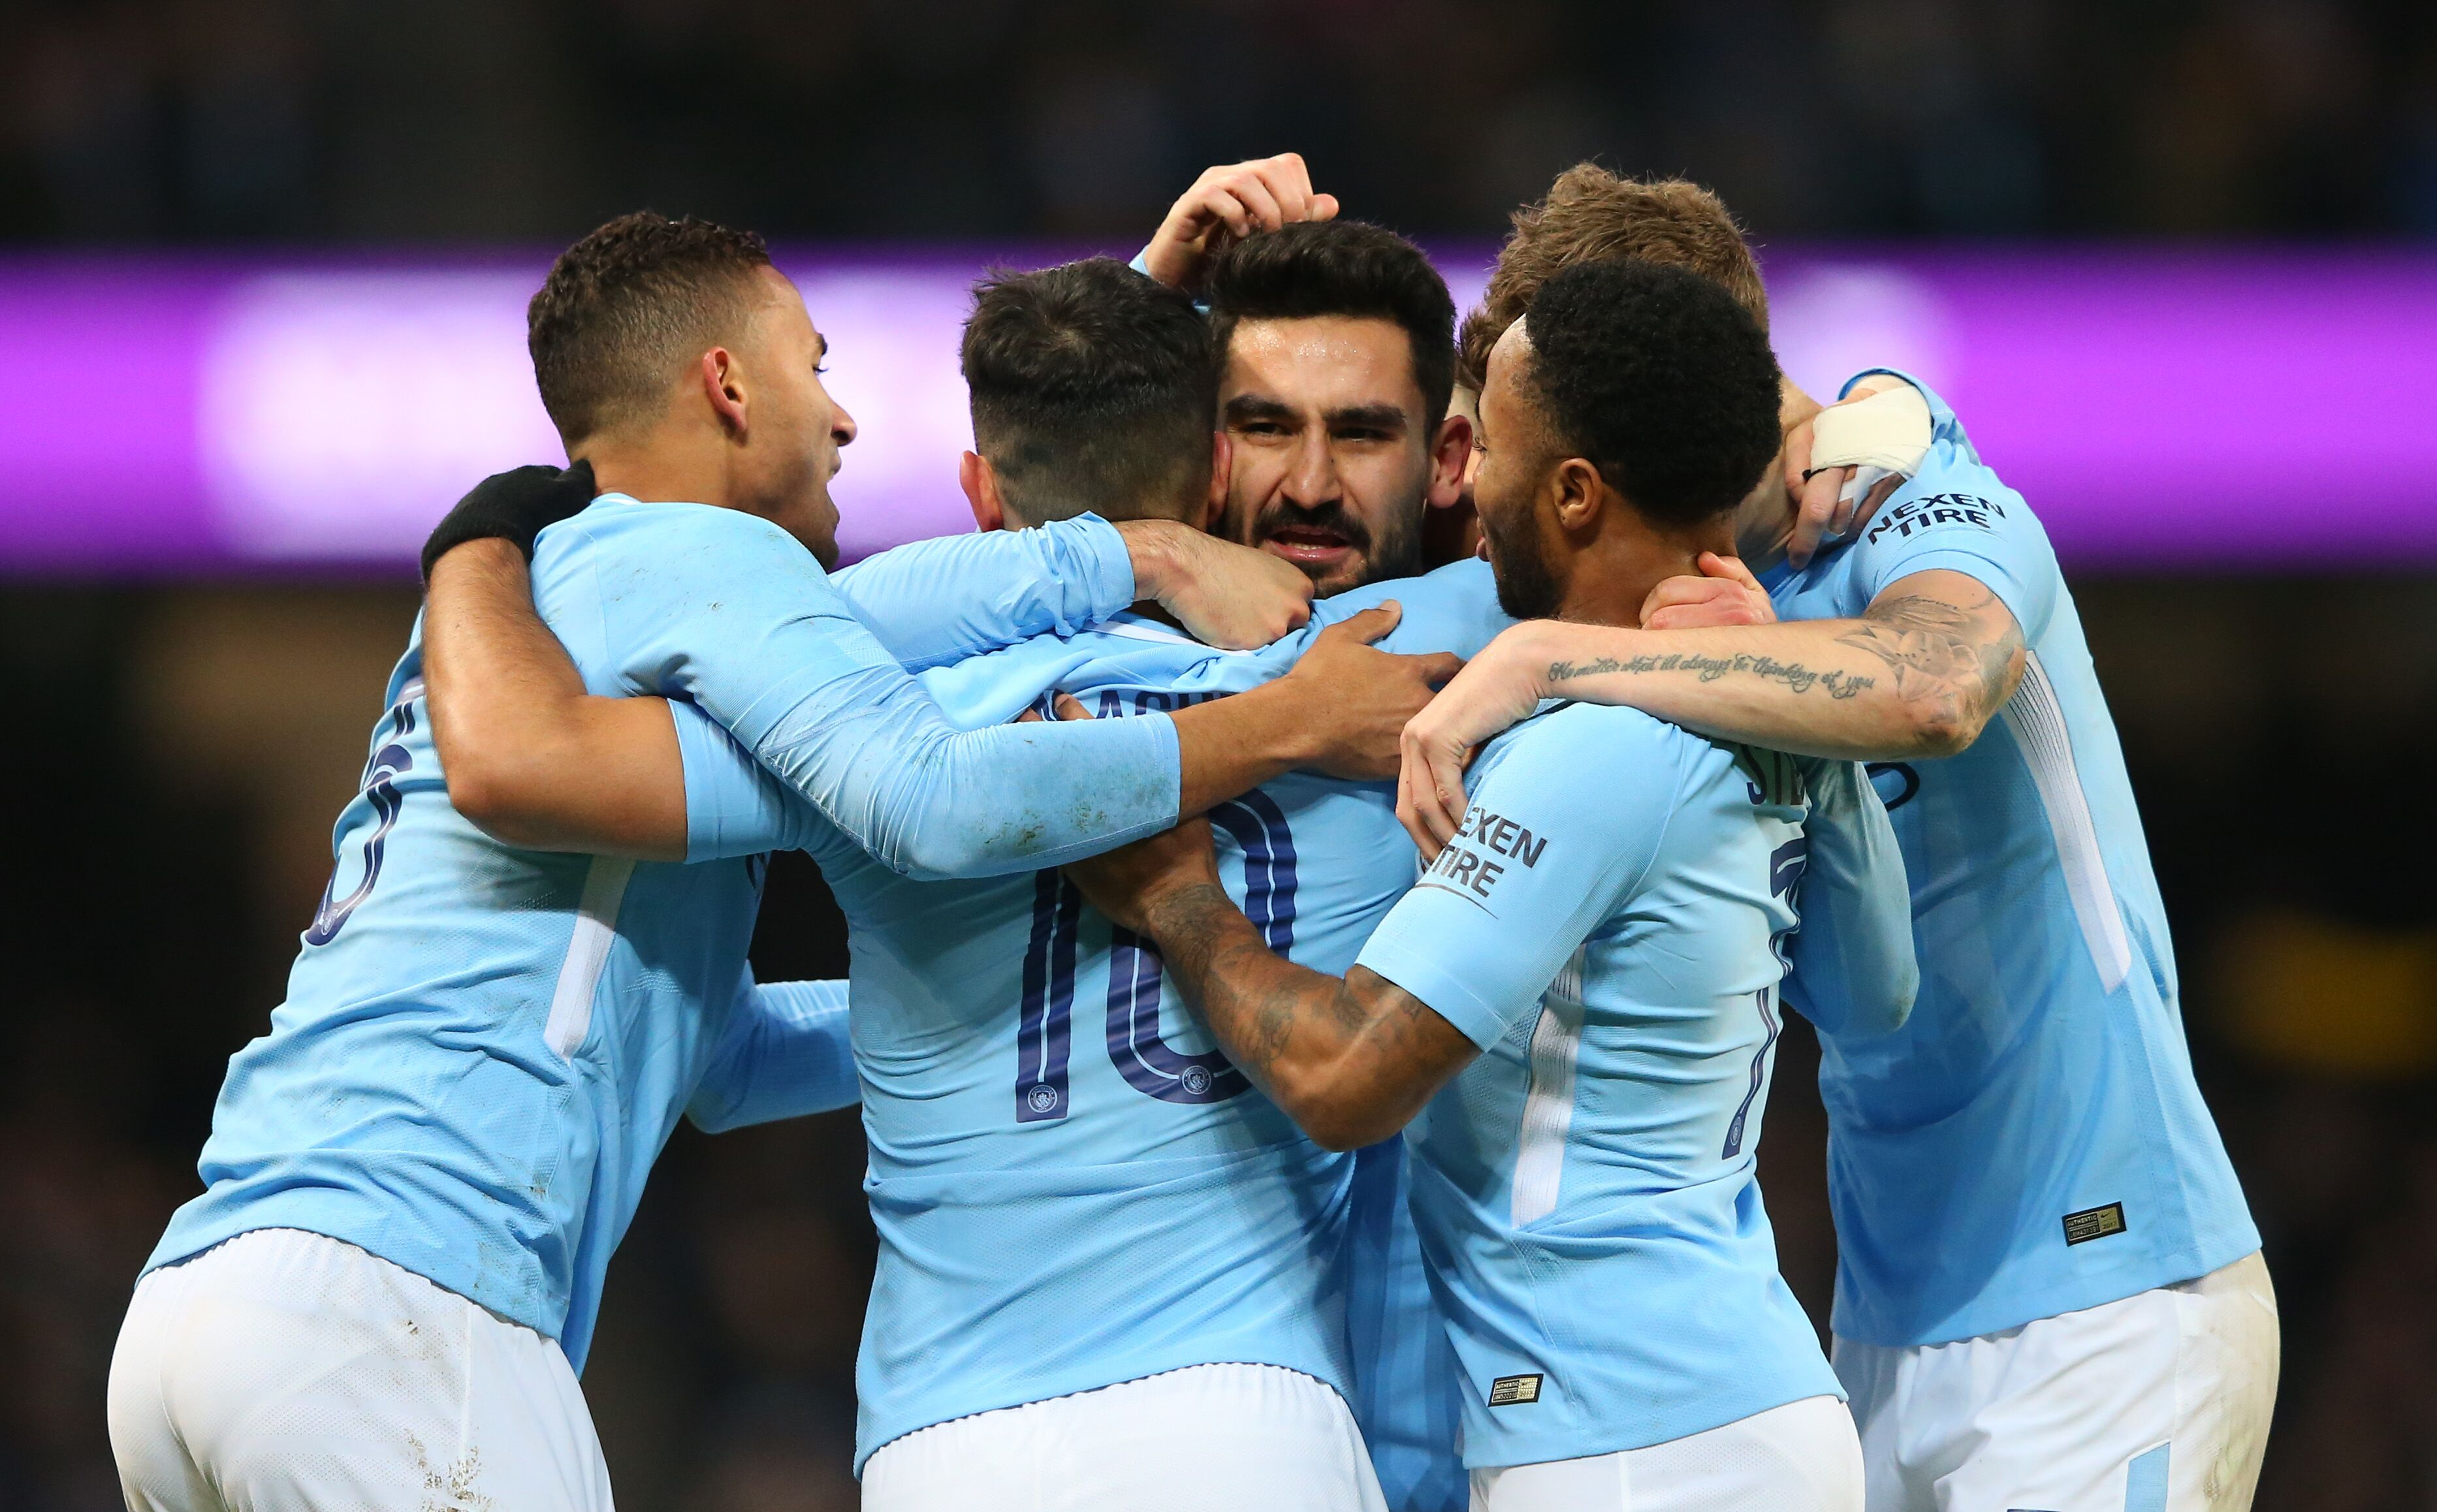 Manchester City: FA Cup player ratings